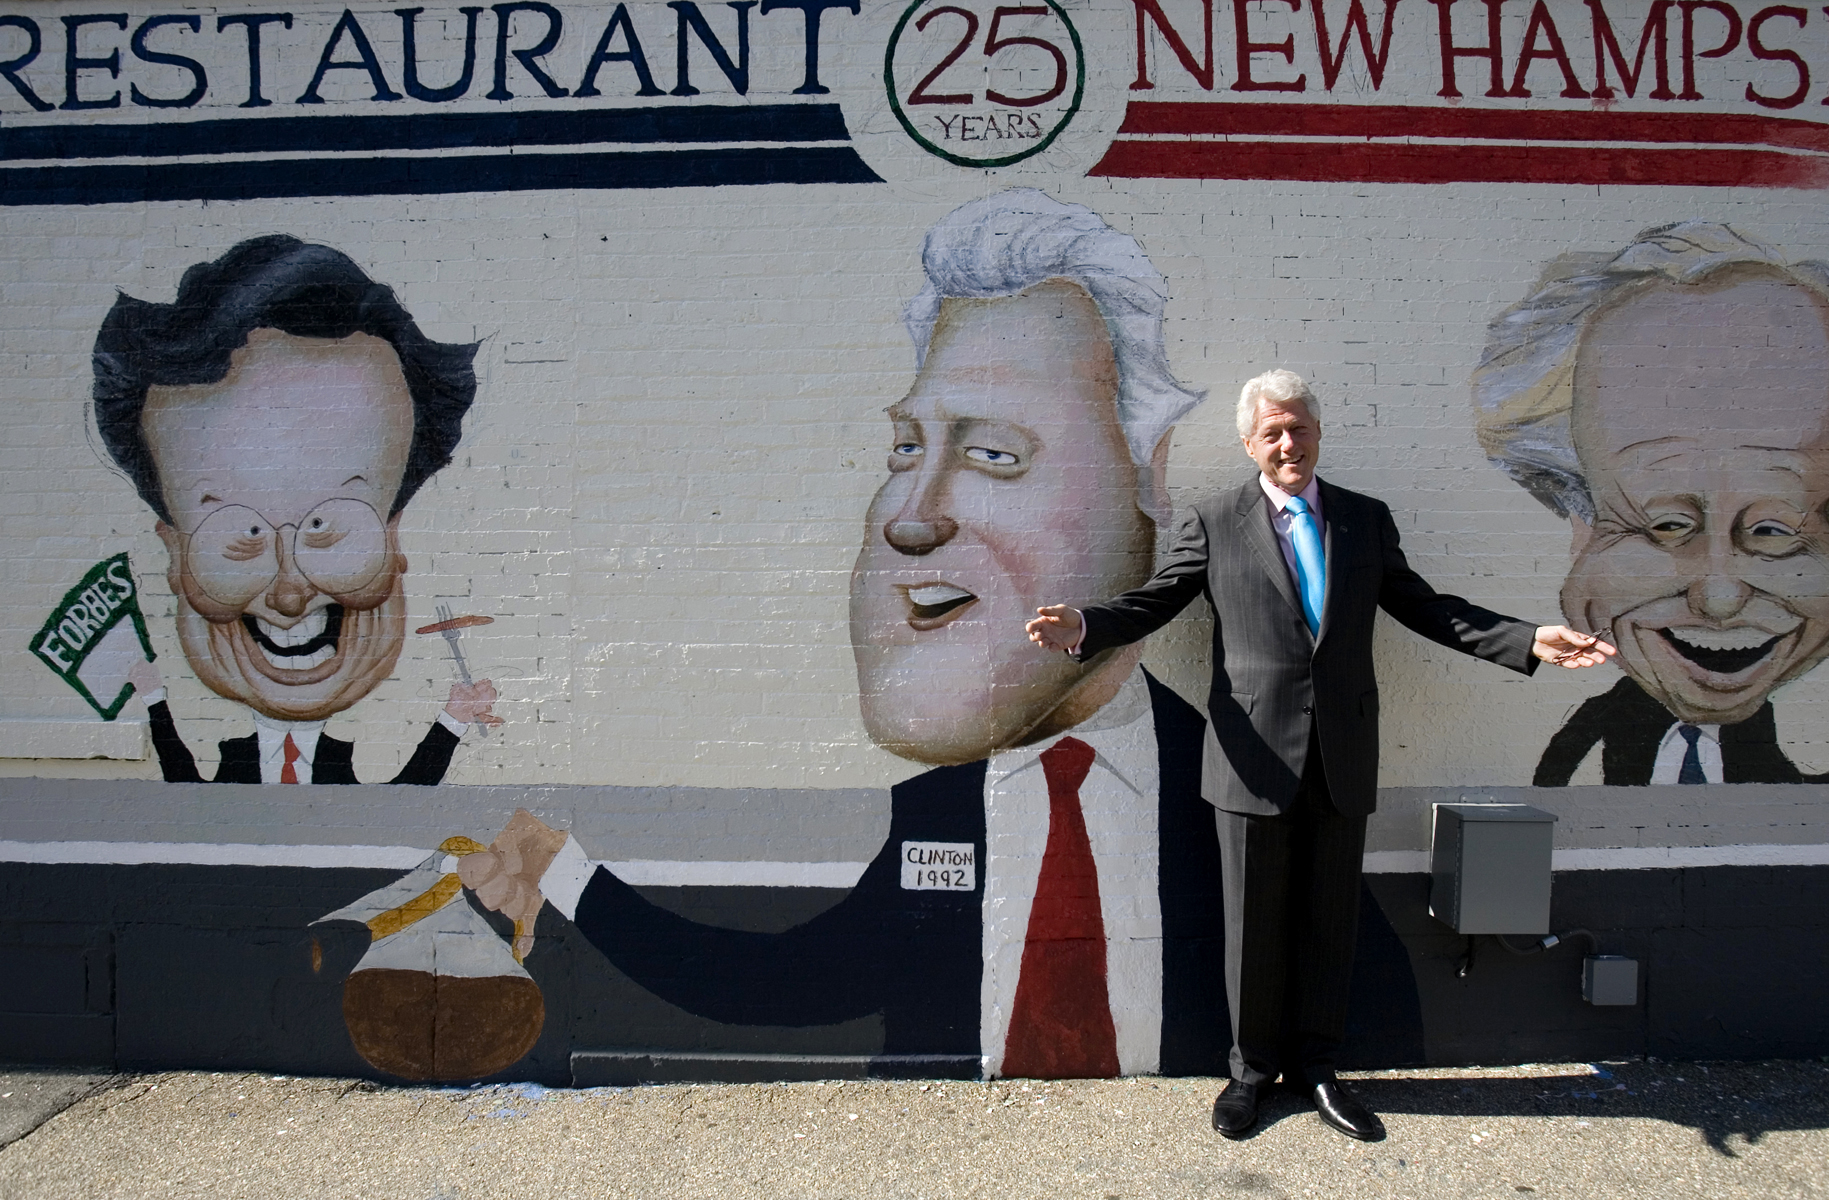 Former President Bill Clinton stops by a mural commemorating the 1992 New Hampshire Primary as he arrives at the Merrimack Restaurant in downtown Manchester, N.H. Clinton was in town to deliver a keynote speech at a local college.